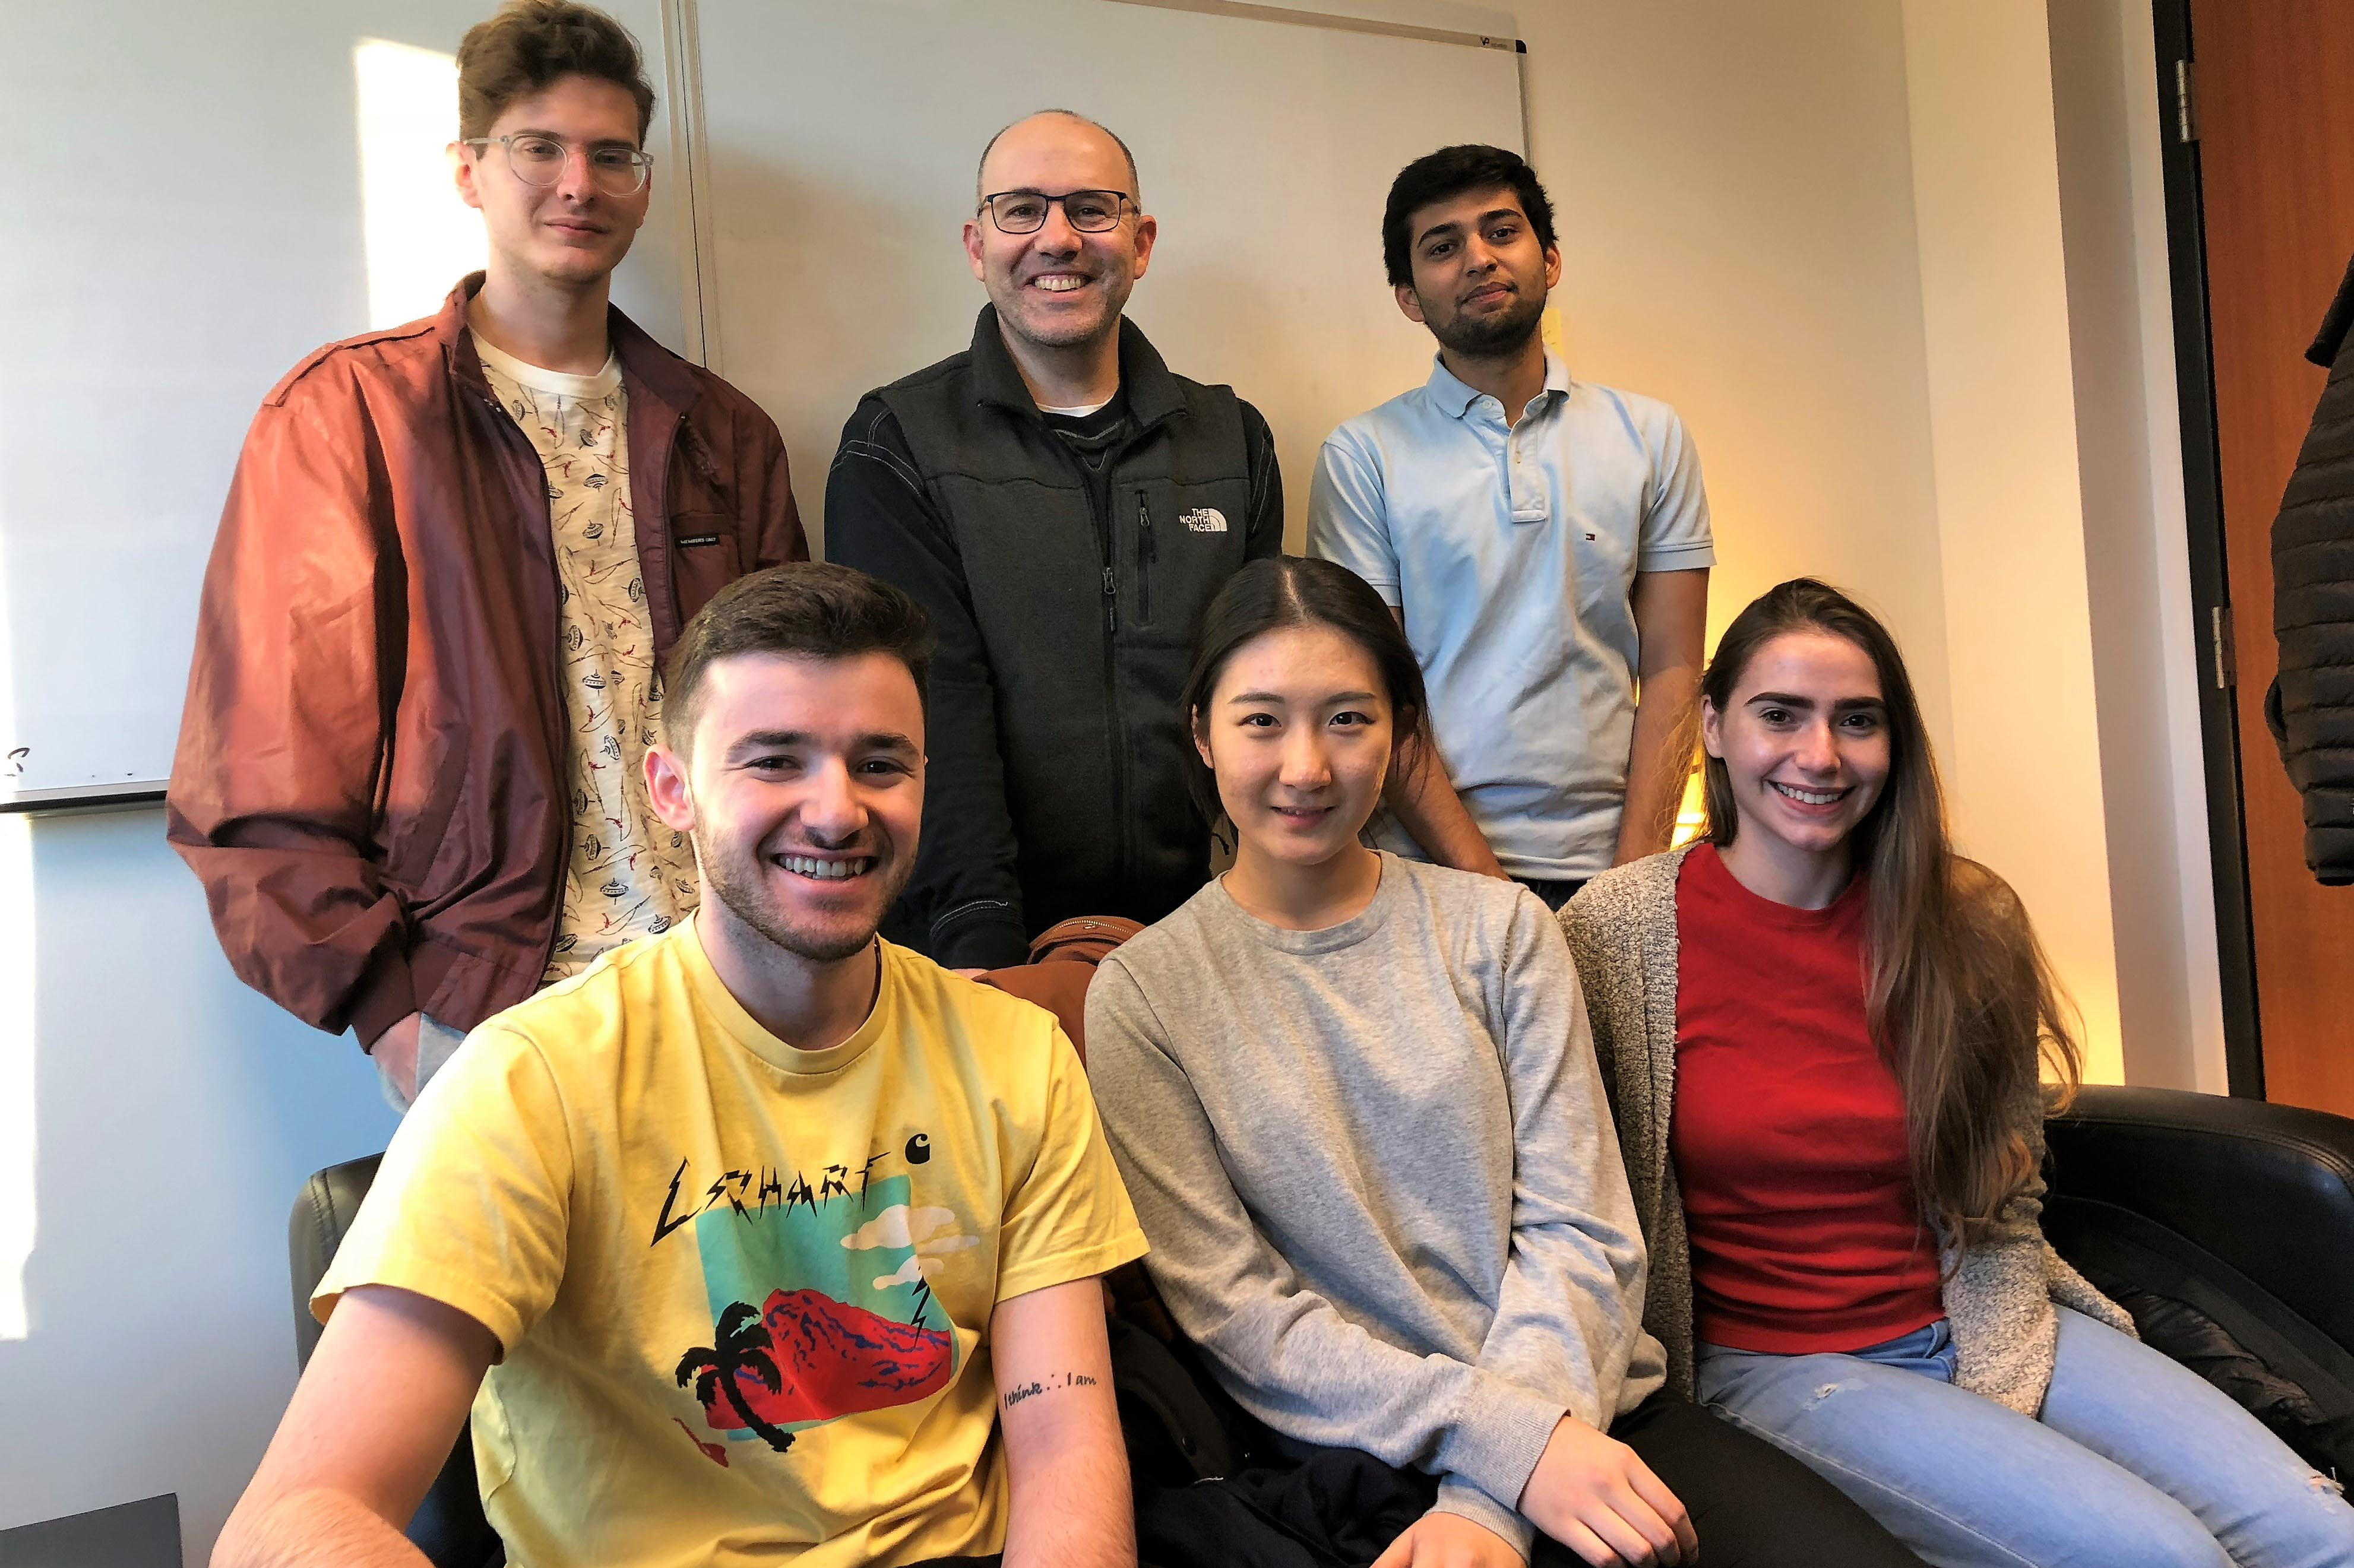 Professor Andy Molinsky with members of his student podcast team, including Kevin Dikdan '20, Manas Maniar '19,Jordan Brodie '19, Yuechen Ta '21 and Ali Carney '19.